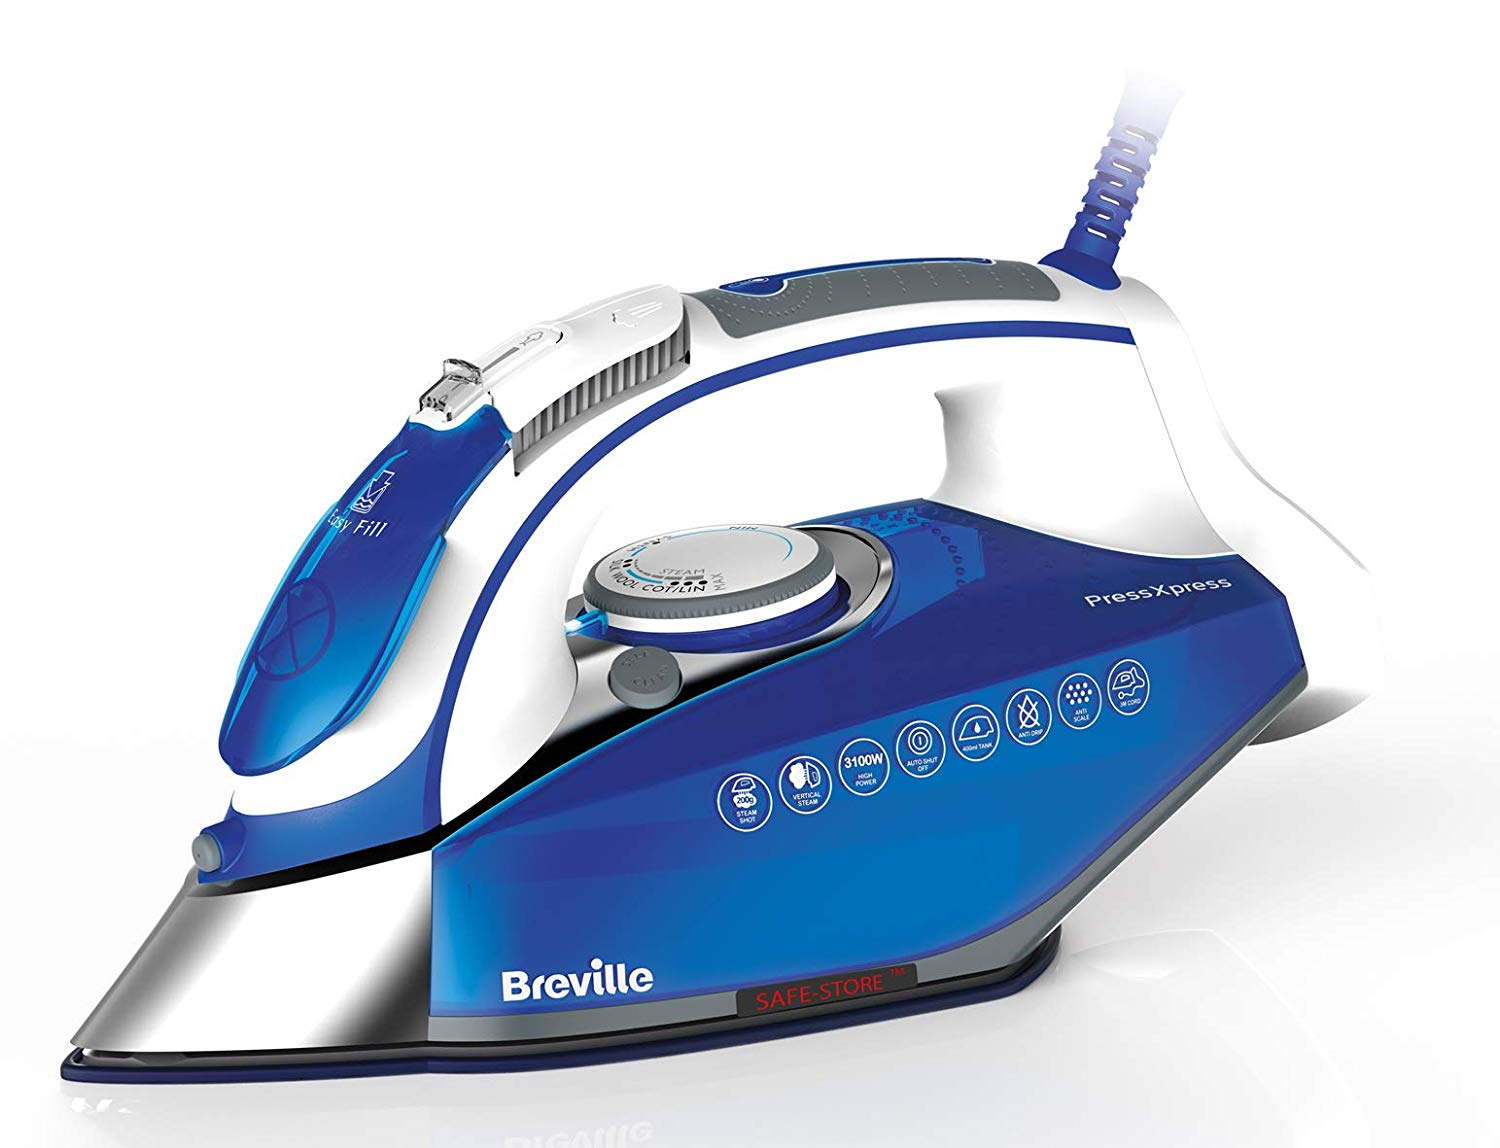 Breville PressXpress 3100W Steam Iron VIN340